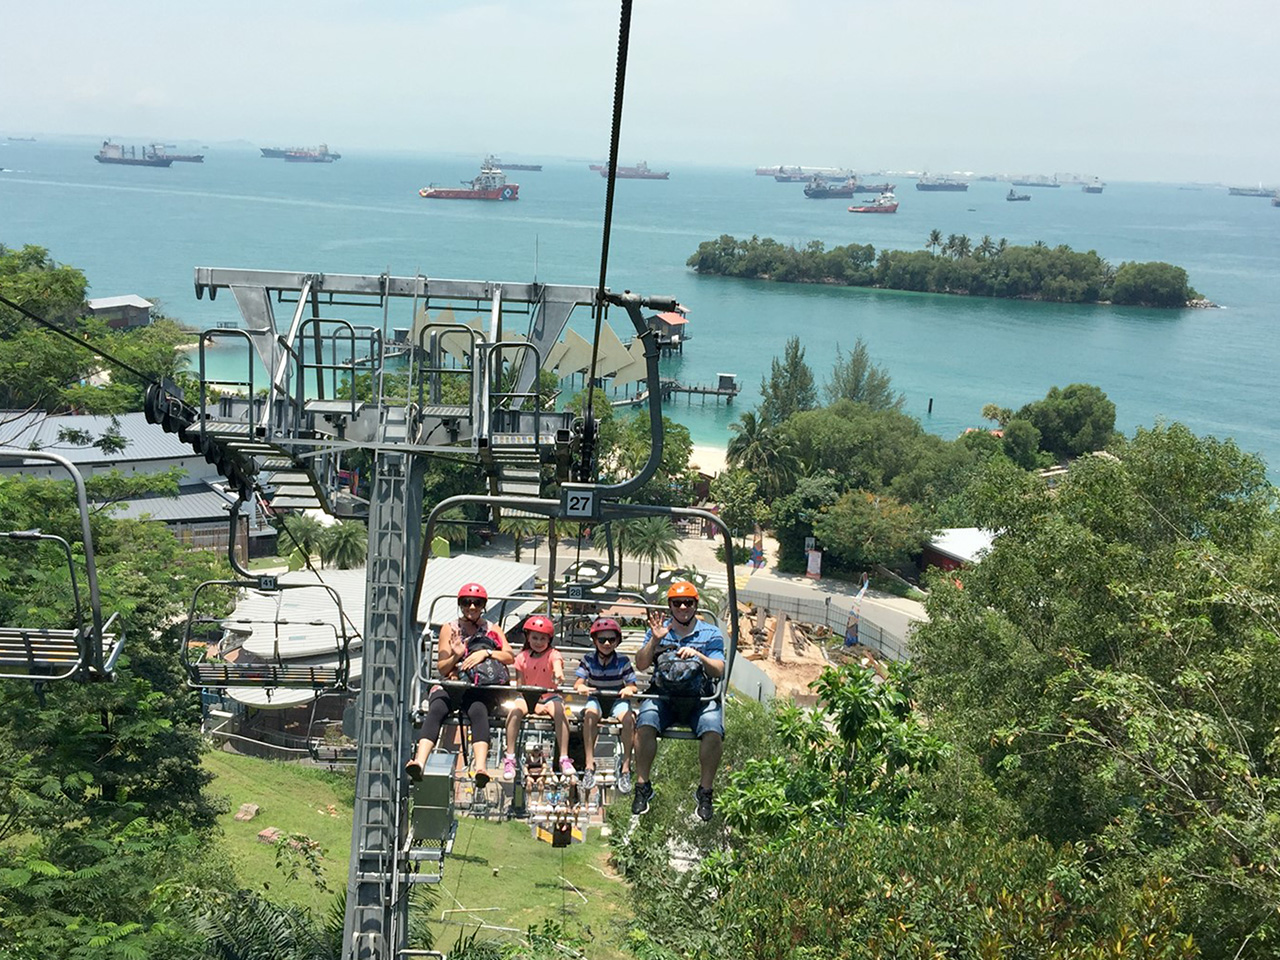 Singapore Family Holidays: 6 Reasons Why Singapore Should Be On Your List